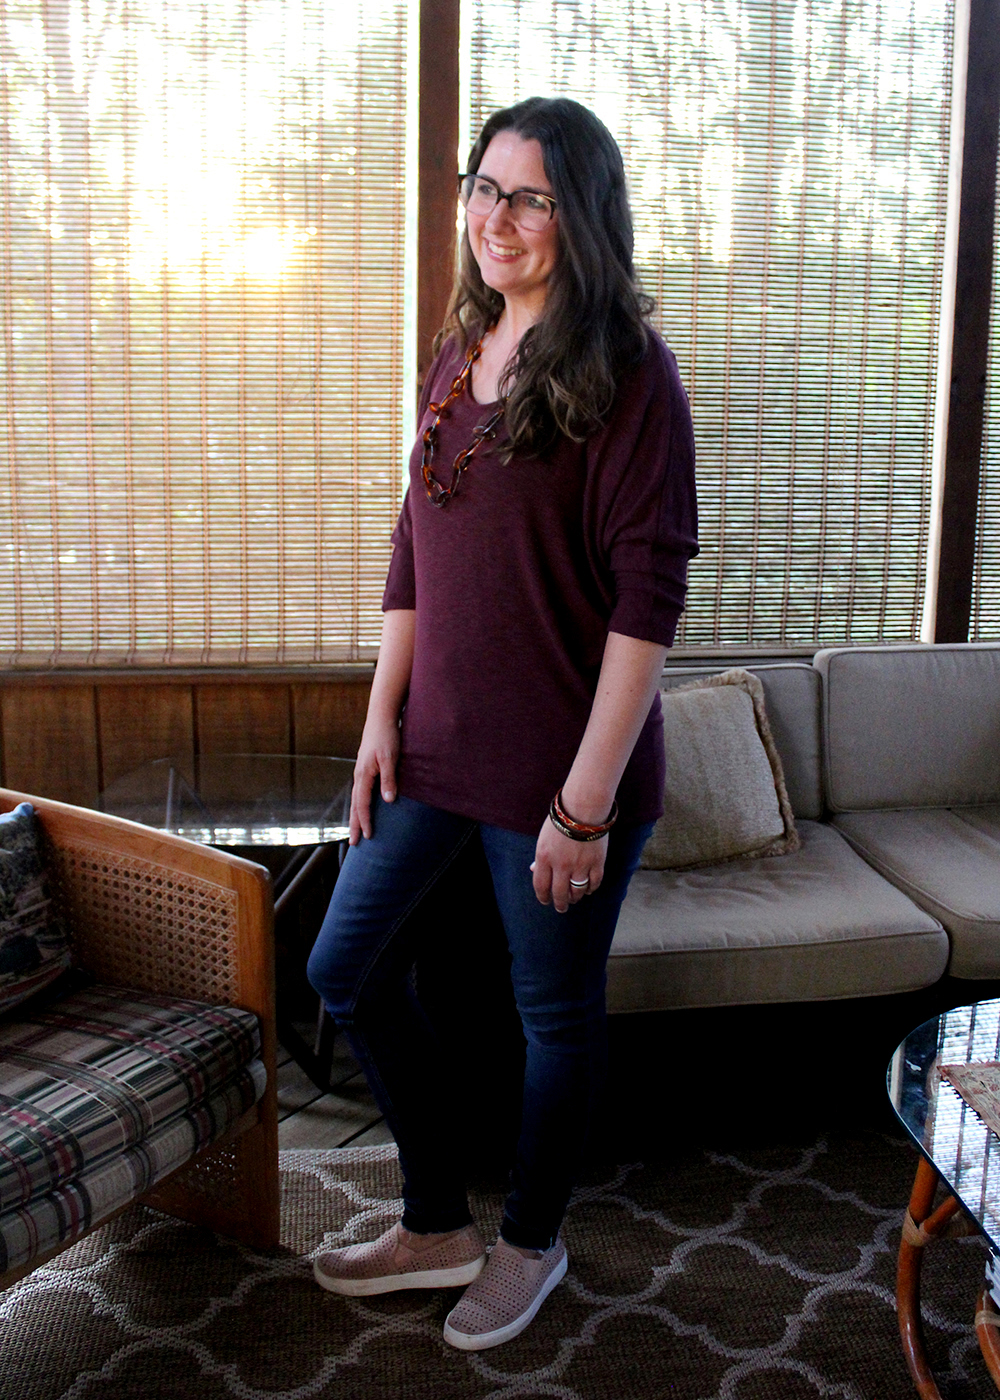 Skinny jean with burgundy top from Stitch Fix. Fall fashion ideas